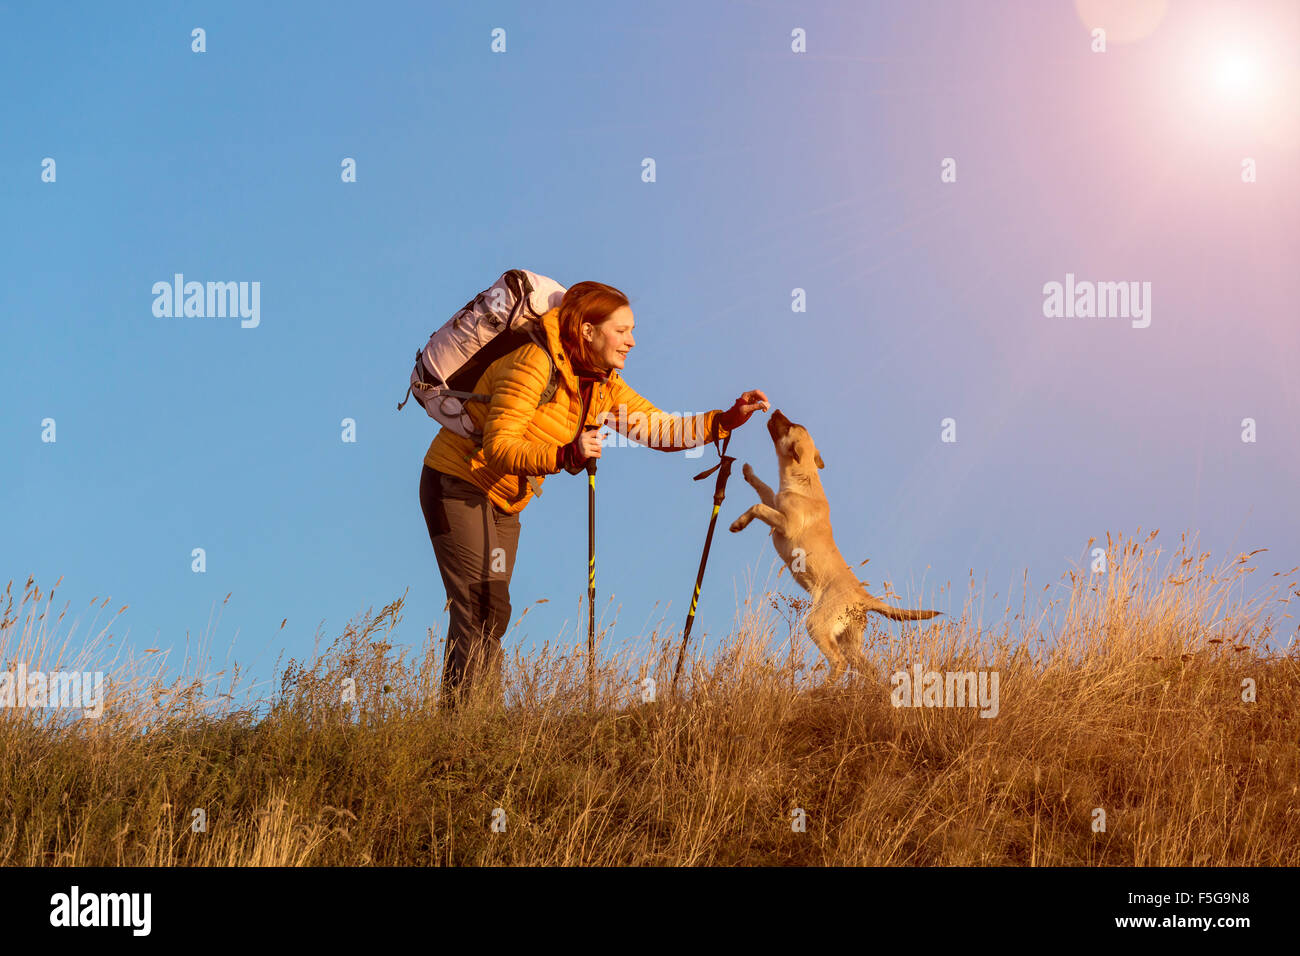 Female hiker and dog on pathway Photo Stock